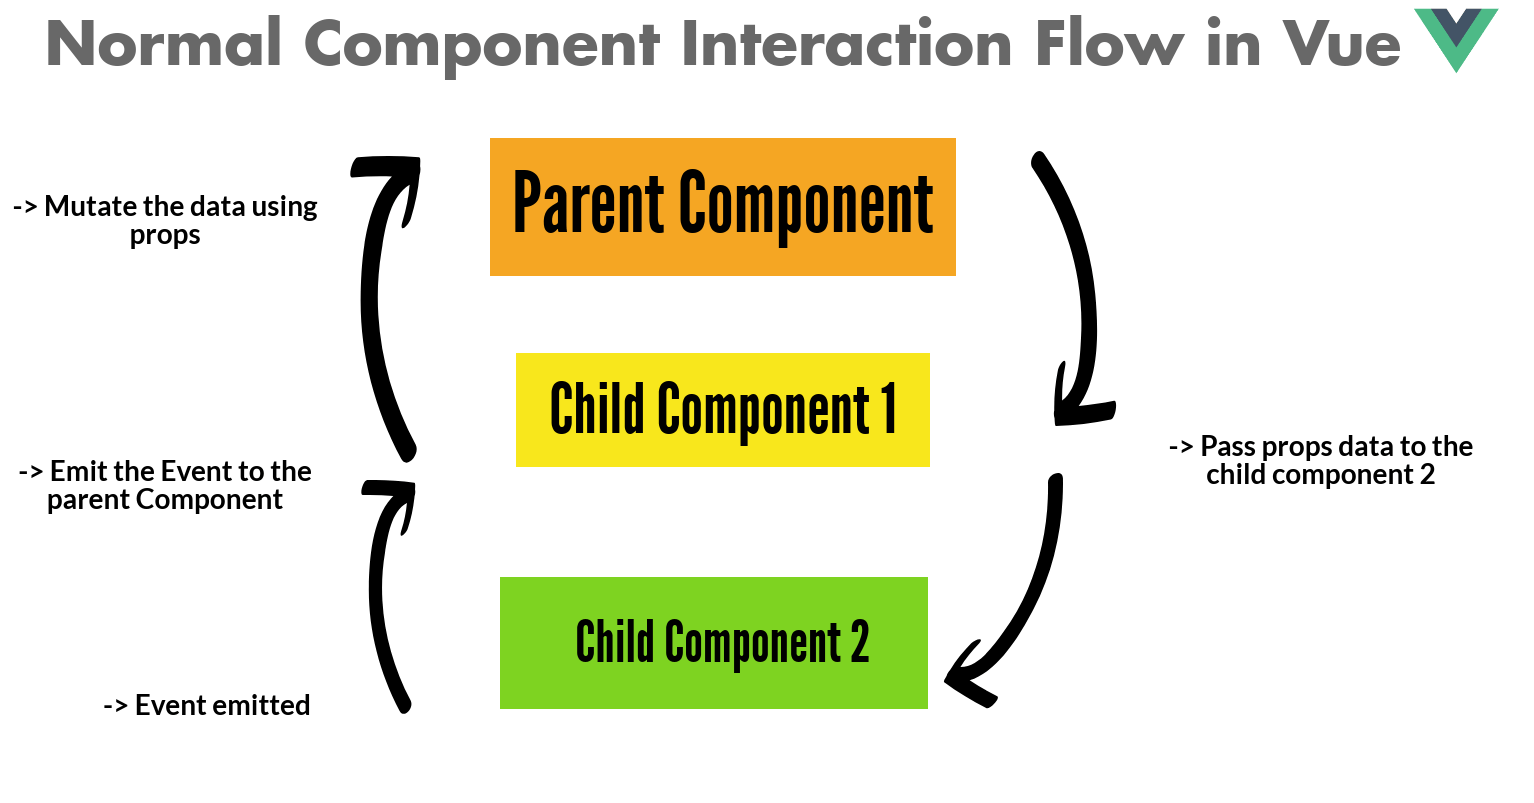 Normal interaction between parent and child component